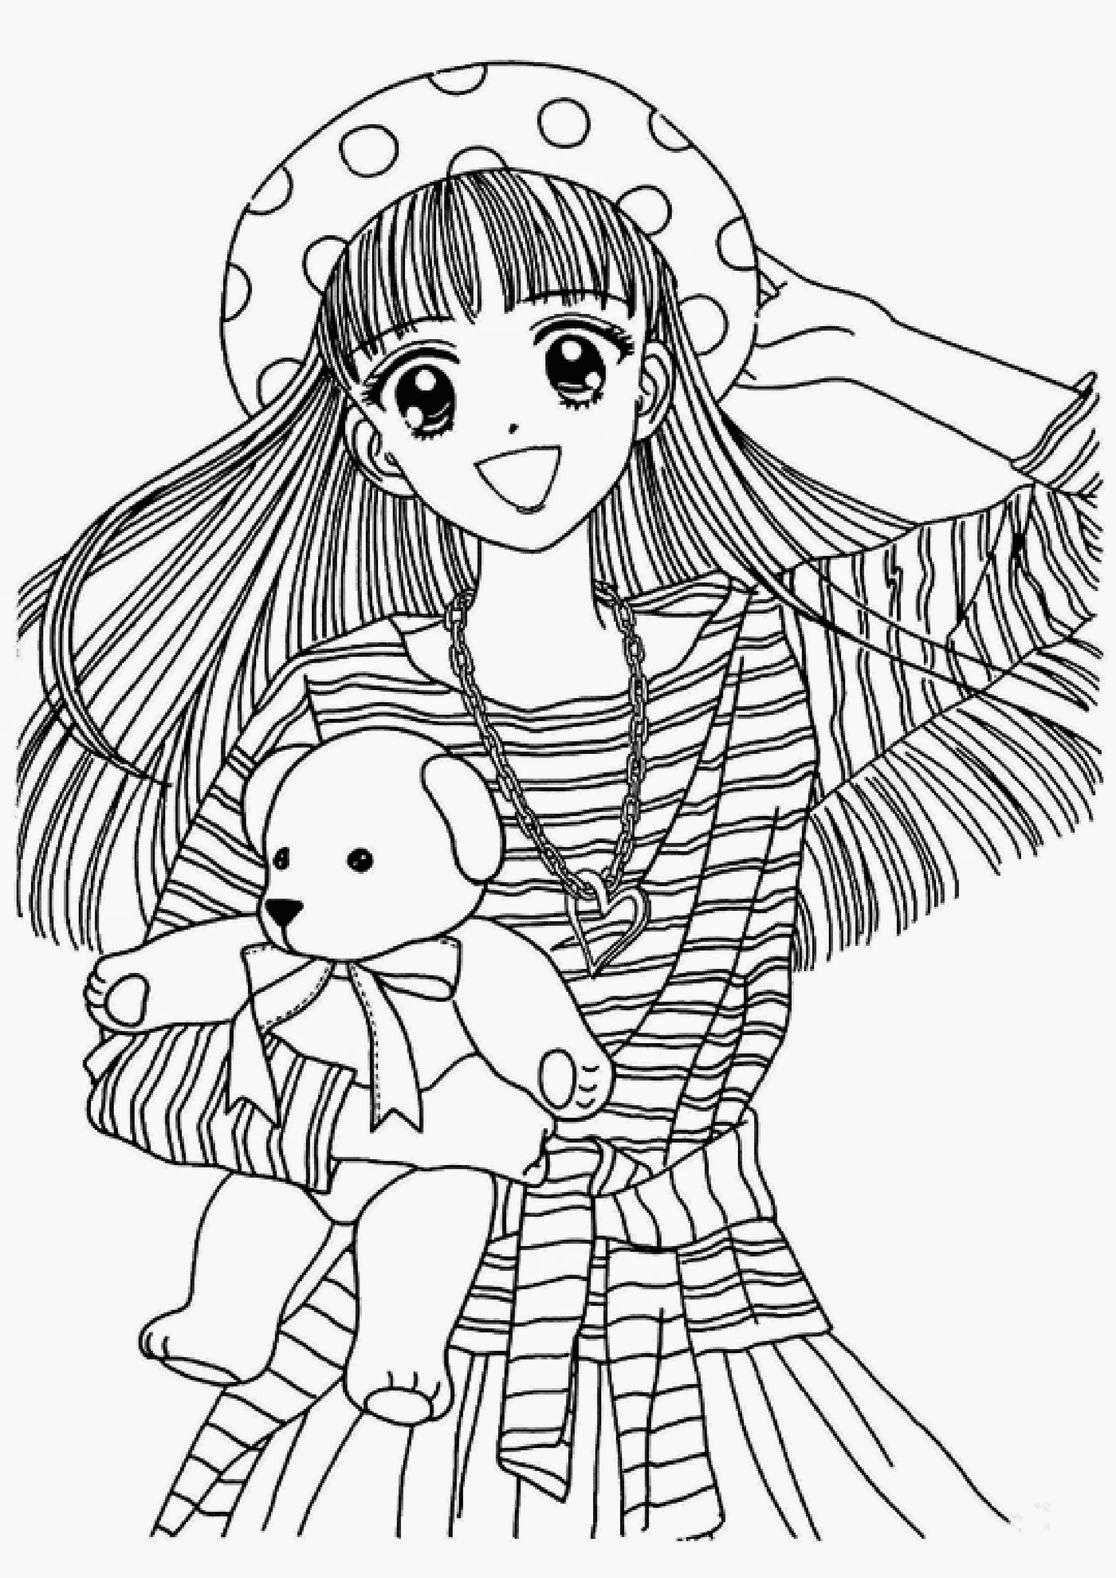 Japanese princess coloring pages - Explore Adult Coloring Pages Coloring Book And More